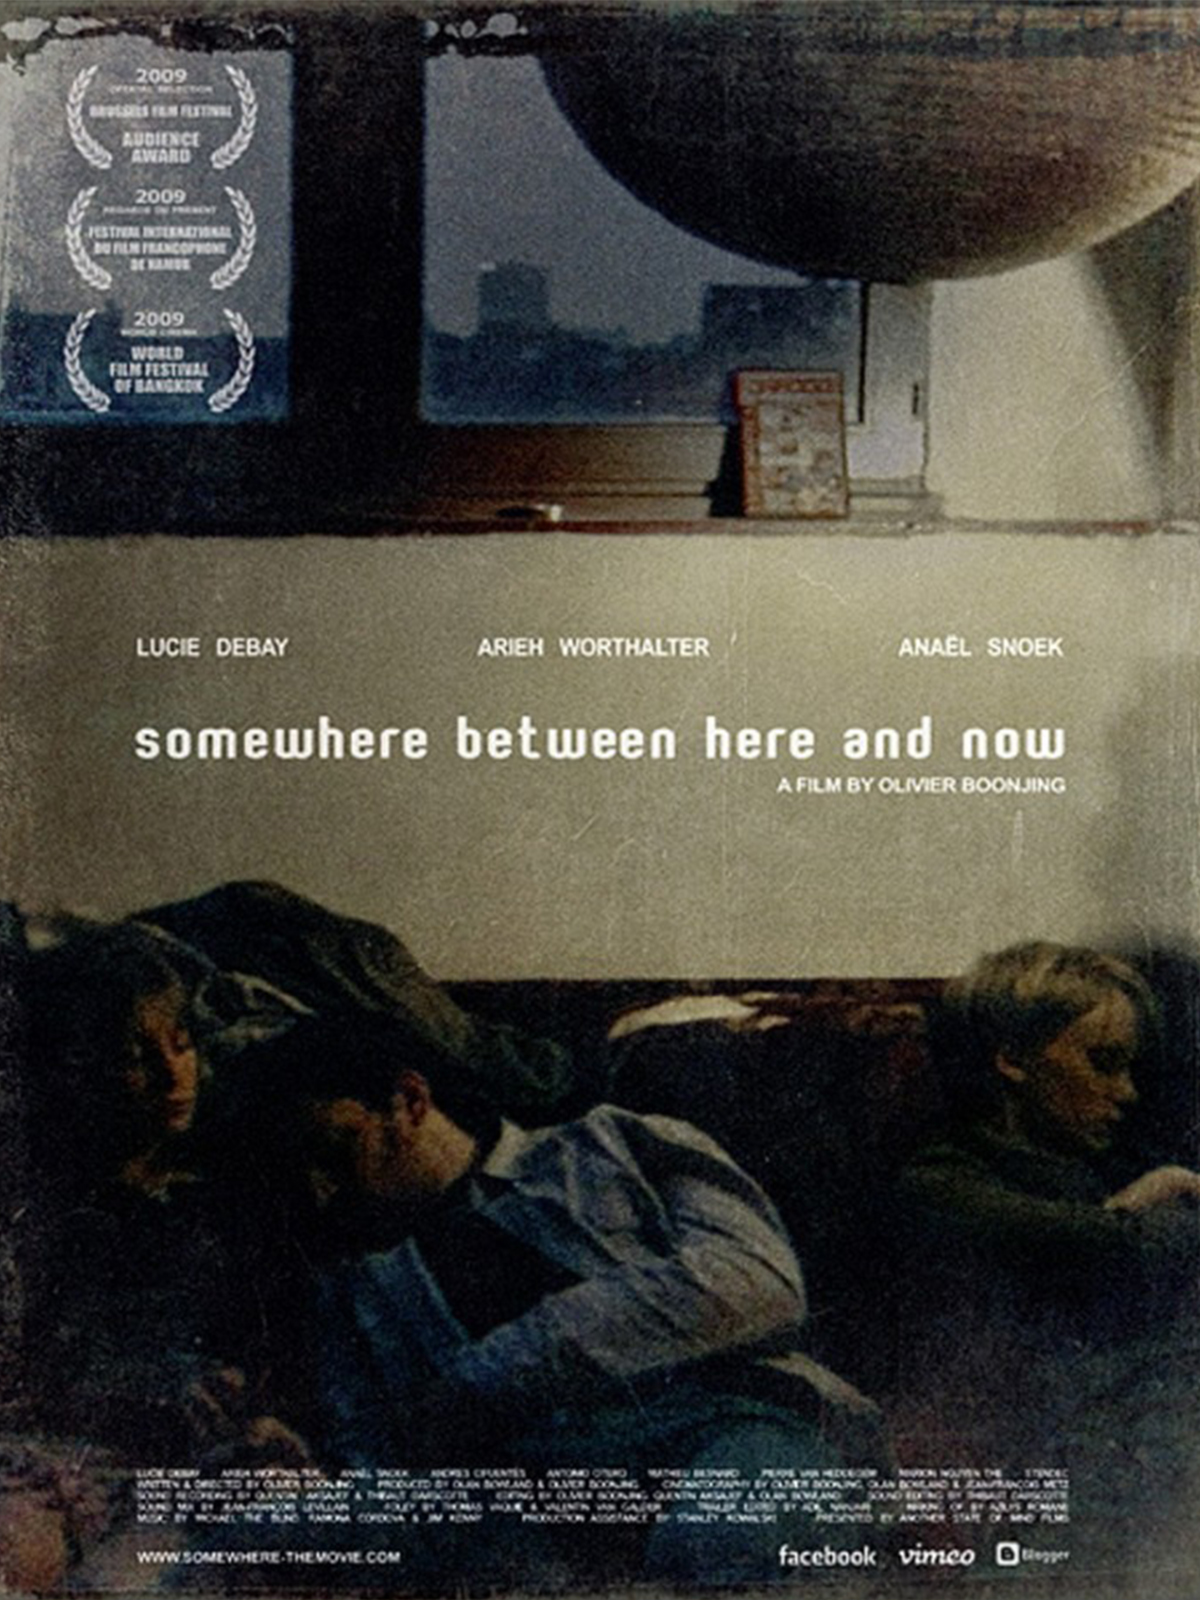 fic_somewhere-between-here-and-now_vertical